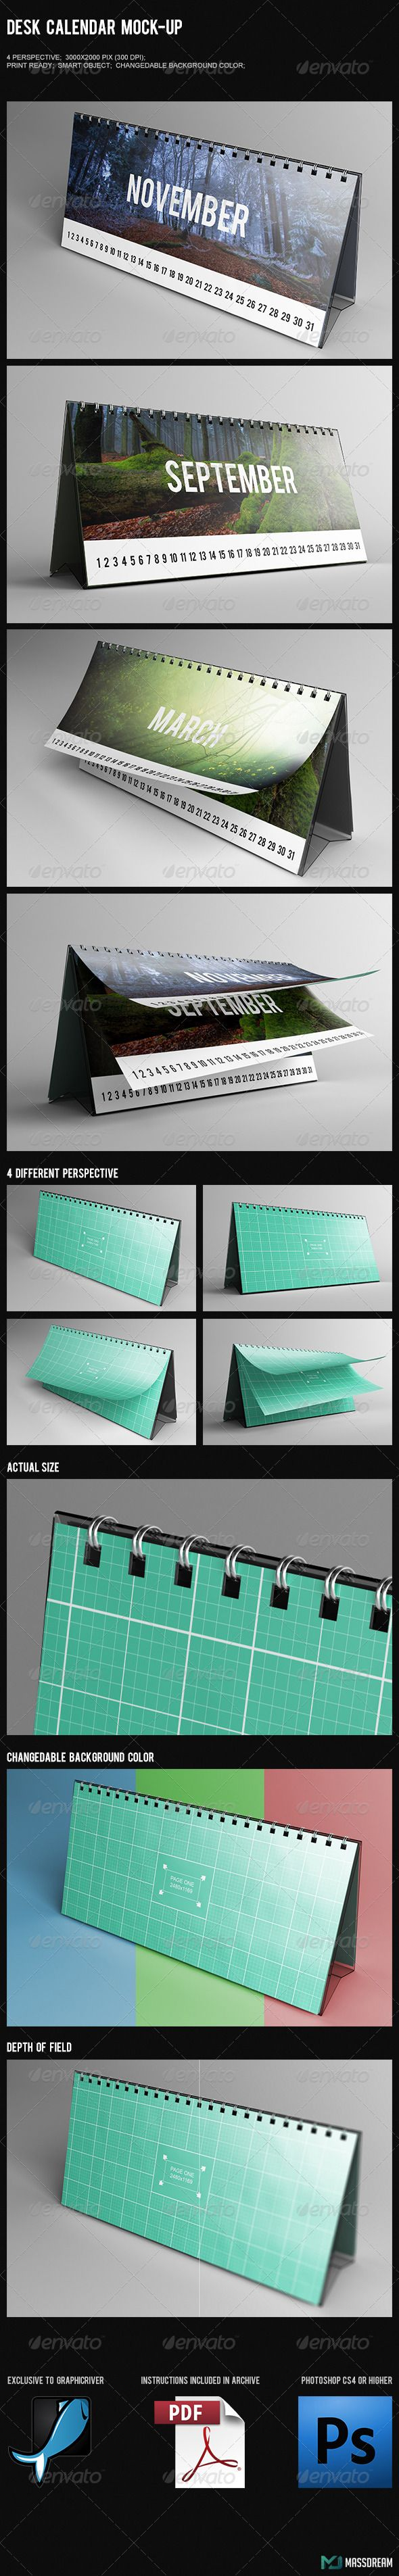 Desk Calendar Mock-Up - Product Mock-Ups Graphics